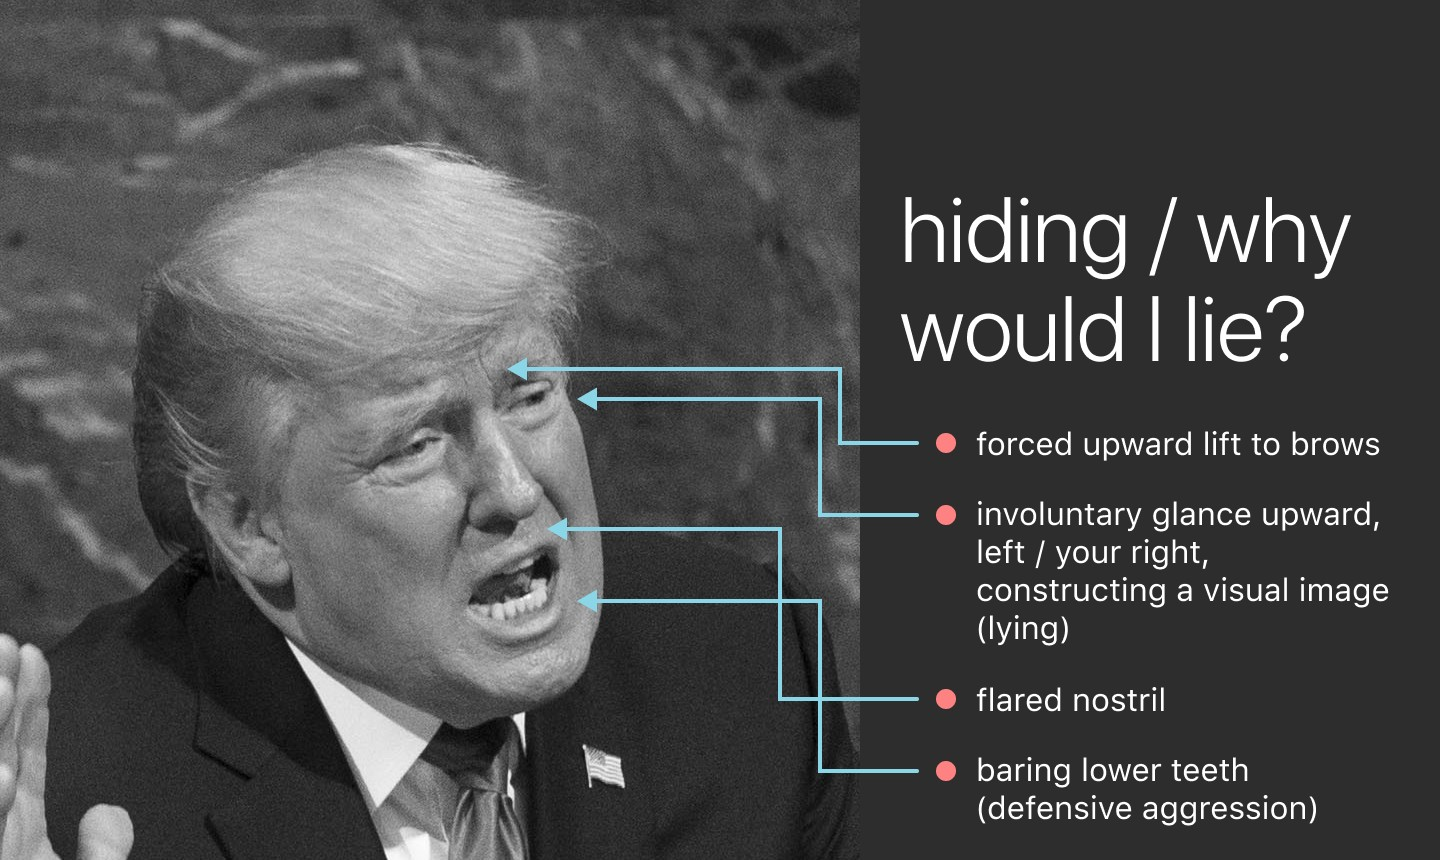 Trump's face, lines indicating: • involuntary glance upward, left (lying) • flared nostril • baring lower teeth (aggression)